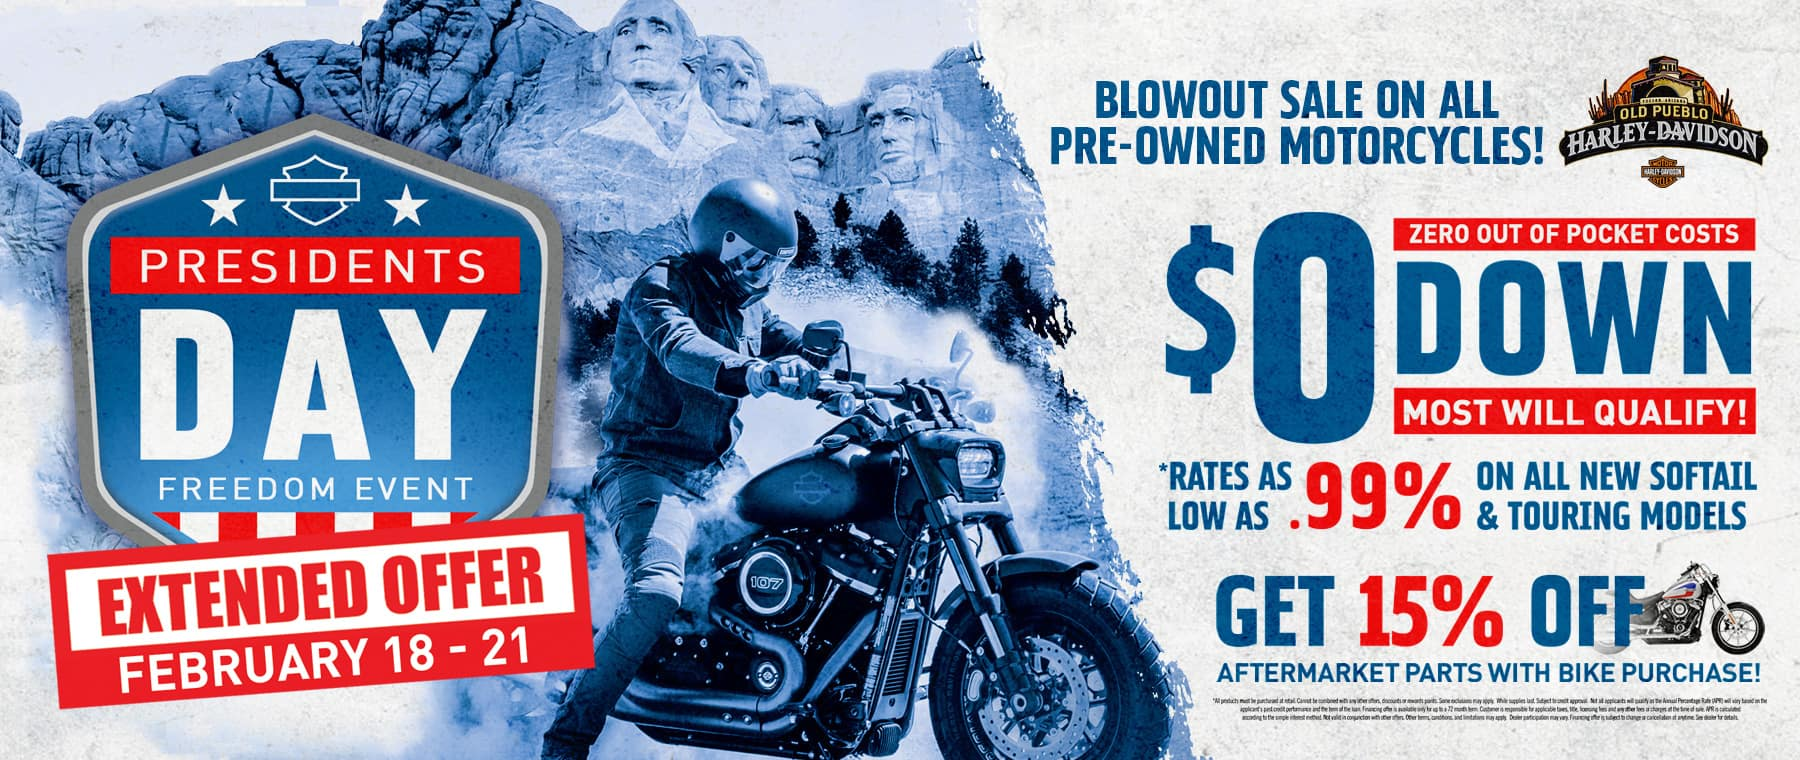 All of the great offers from President's Day are extended through February 21! Test rides availabel on ALL pre-owned motorcycles! Don't miss out!